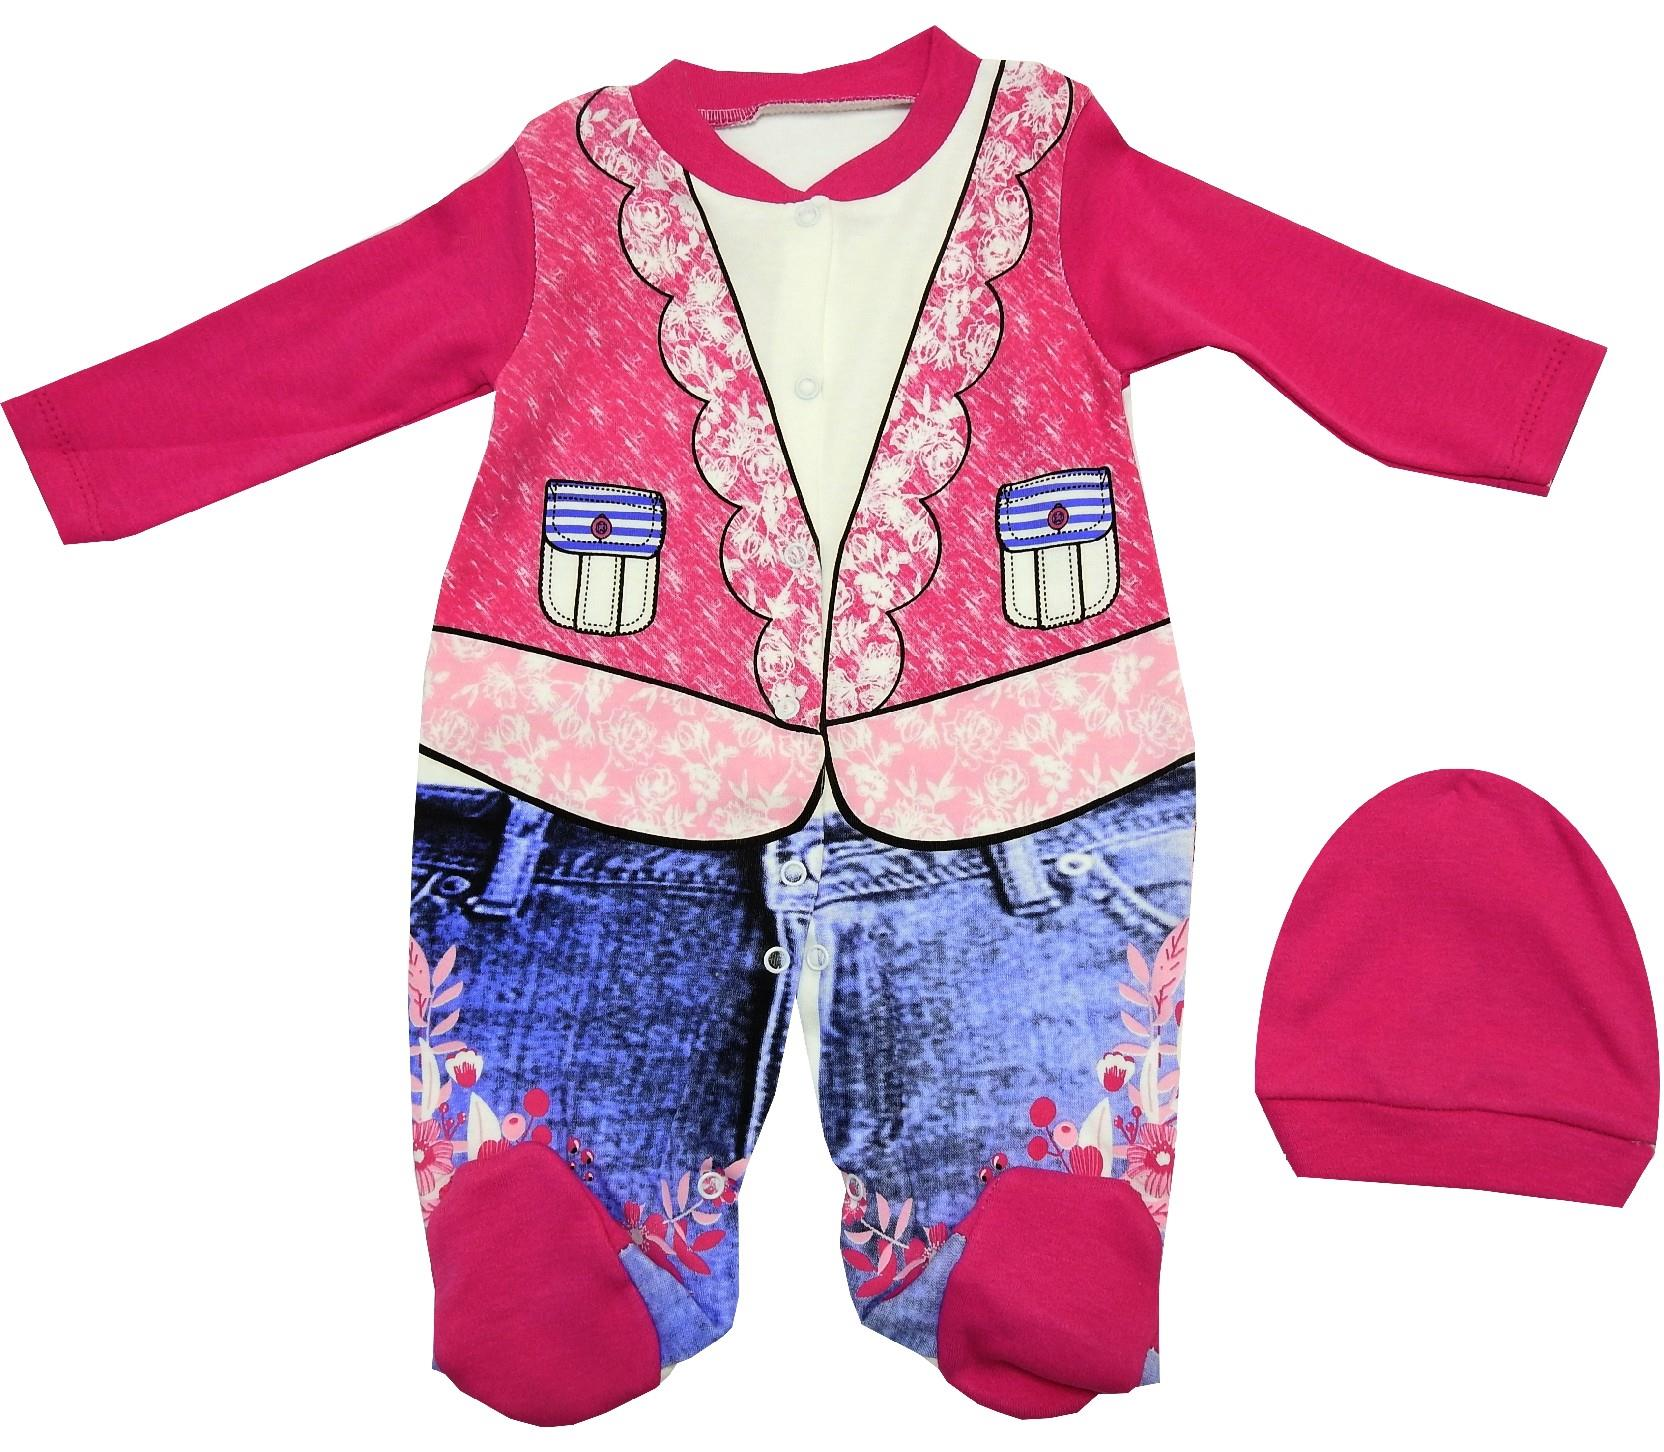 WHOLESALE DECORATIVE BOLERO PATTERN DESIGN BODYSUIT & BEANIE DOUBLE SET FOR GIRL (3-6-9 MONTH)